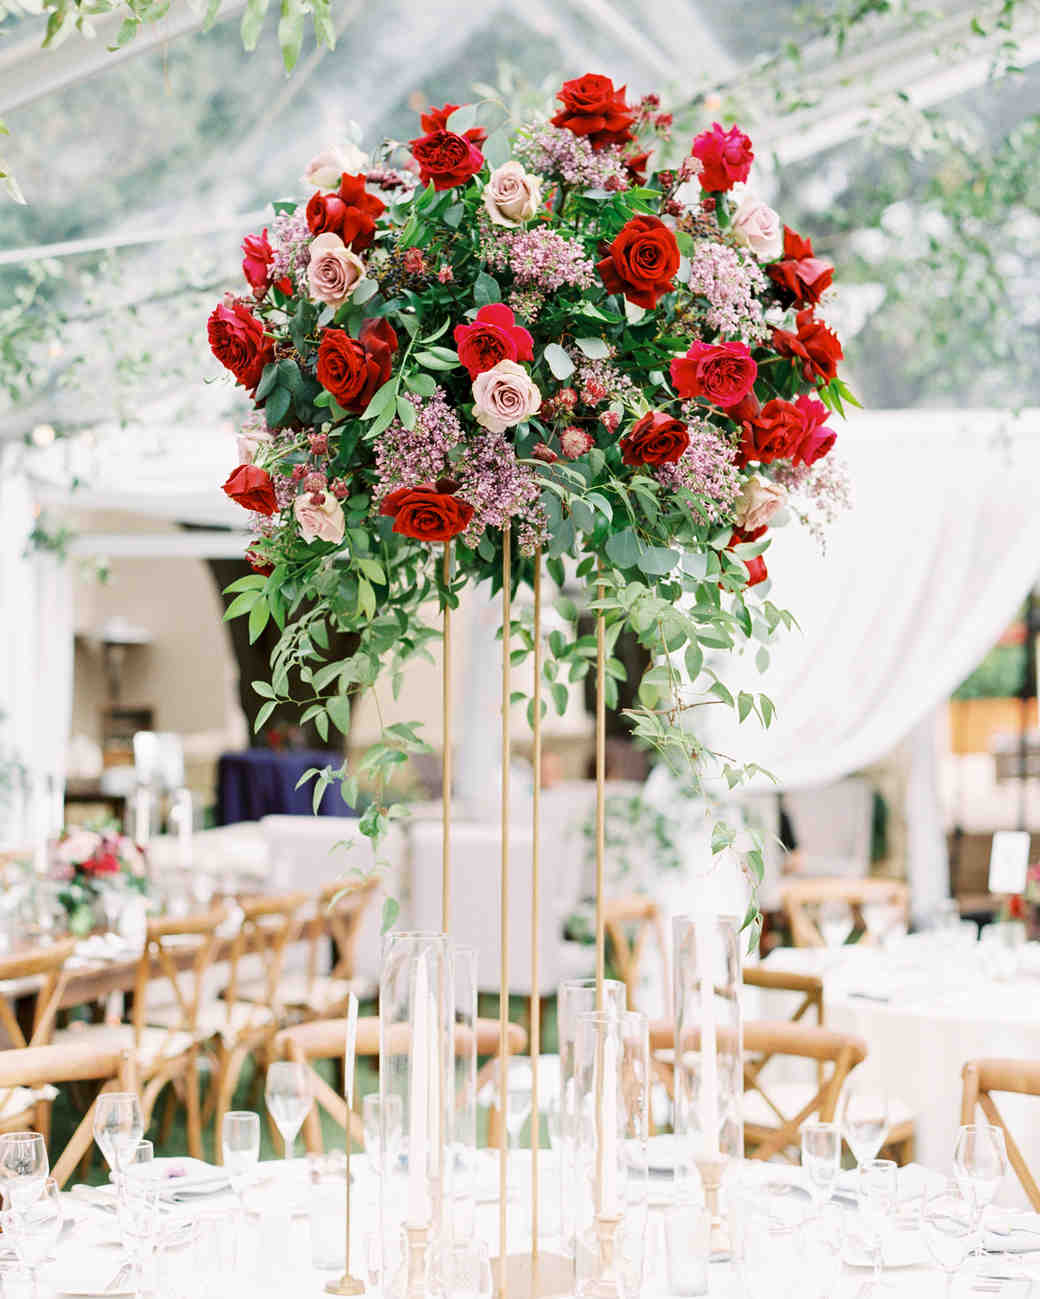 Tall Centerpiece With Red And Pink Garden Roses: High Centerpiece Wedding Rings At Websimilar.org